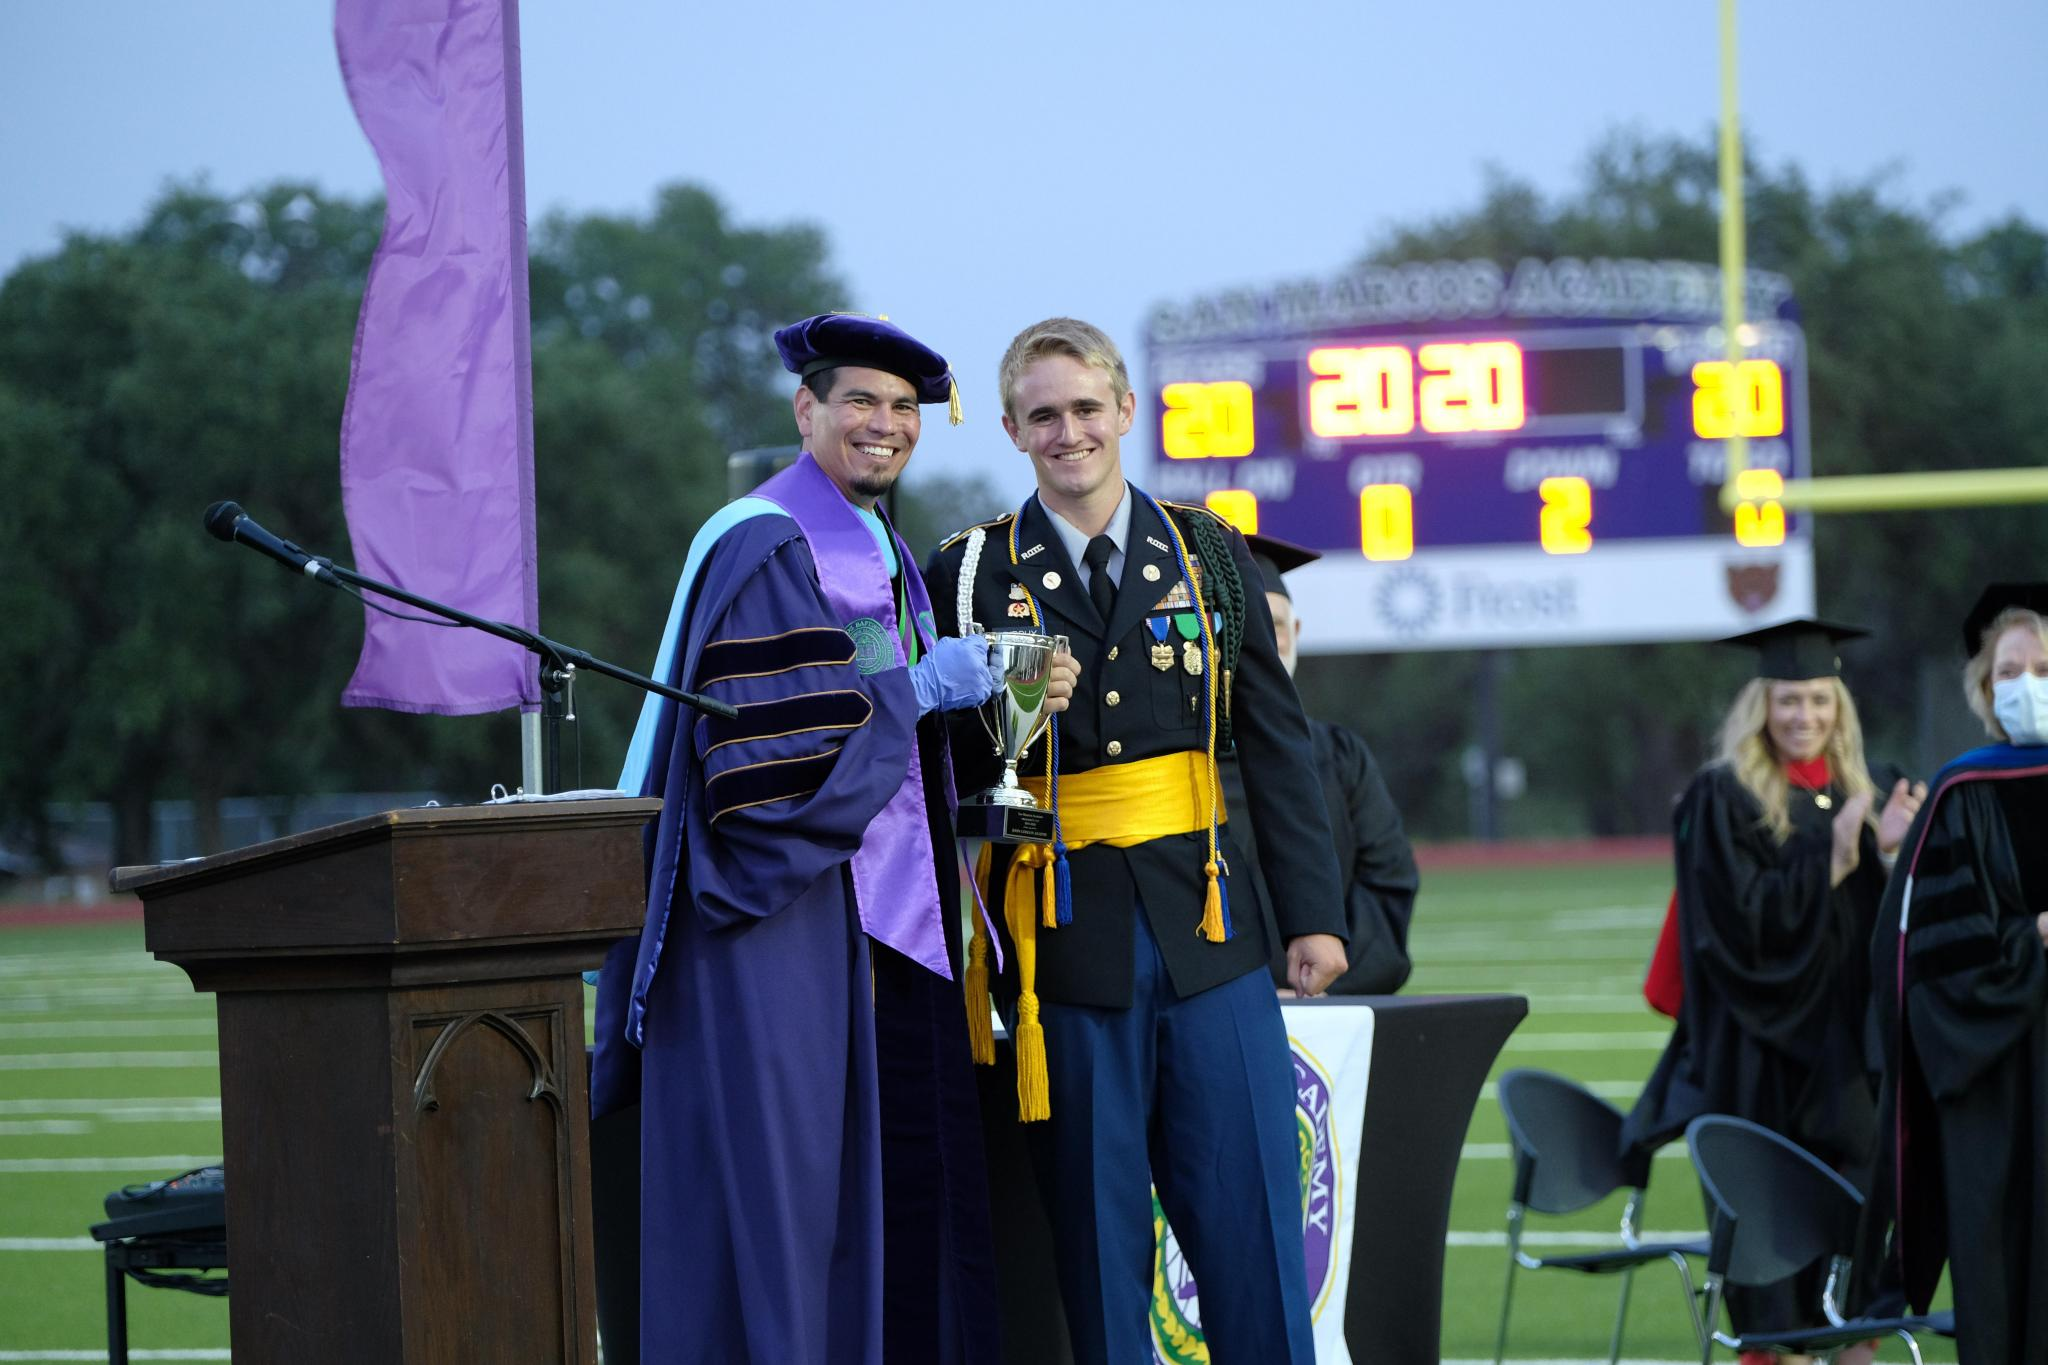 Gordon Murphy of Niederwald receives the President's Cup from Dr. Brian Guenther during the Commencement ceremony. This is the highest award a student can receive at the Academy. Murphy plans to enter the Texas Fire Academy next month to follow in his father's footsteps as a firefighter.